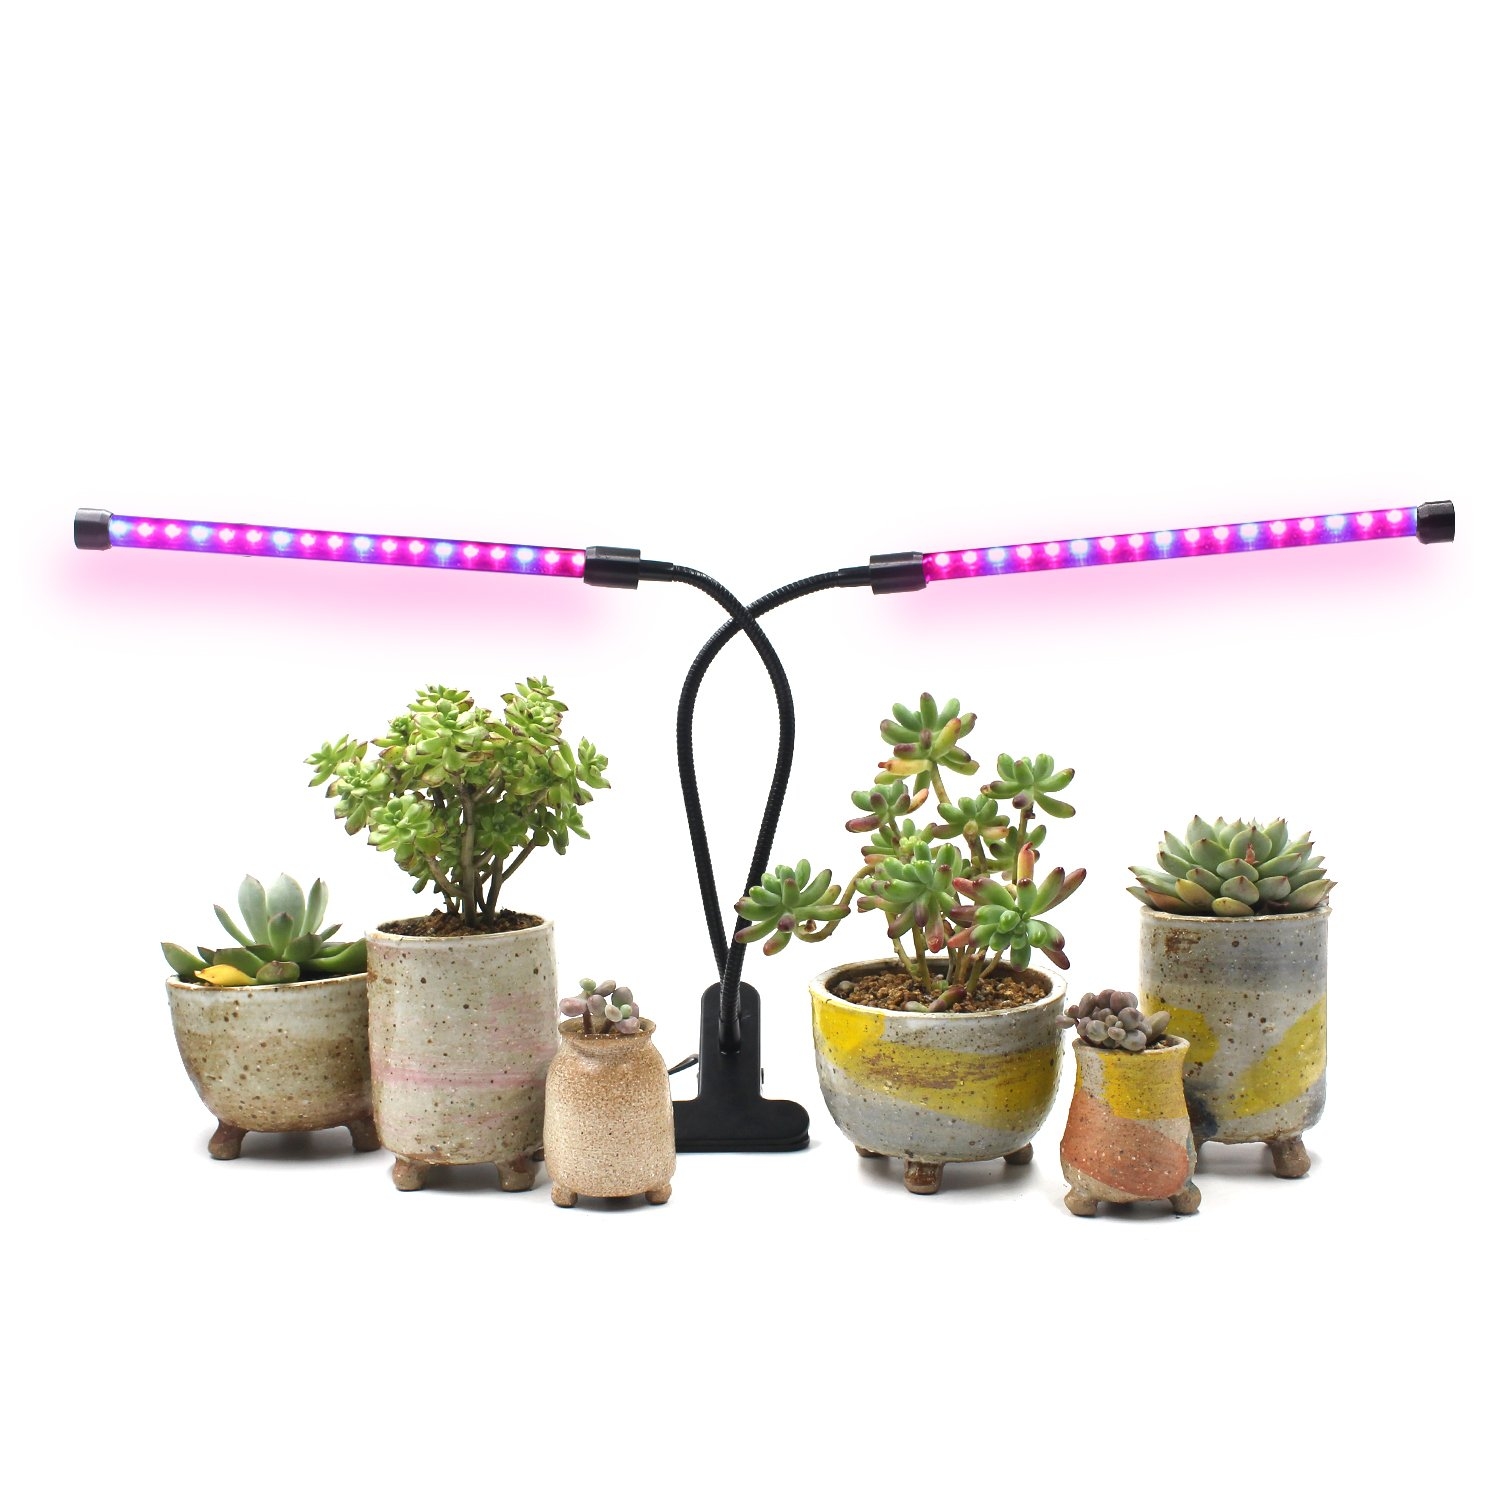 AMAZINGCATS [2018 UPGRADED] 18W Dual Head Timing Grow Lamp, 36 LED Chips with Red/Blue Spectrum for Indoor Plants, Adjustable Gooseneck, 3/6/12H Timer, 5 Dimmable Levels ACS18002